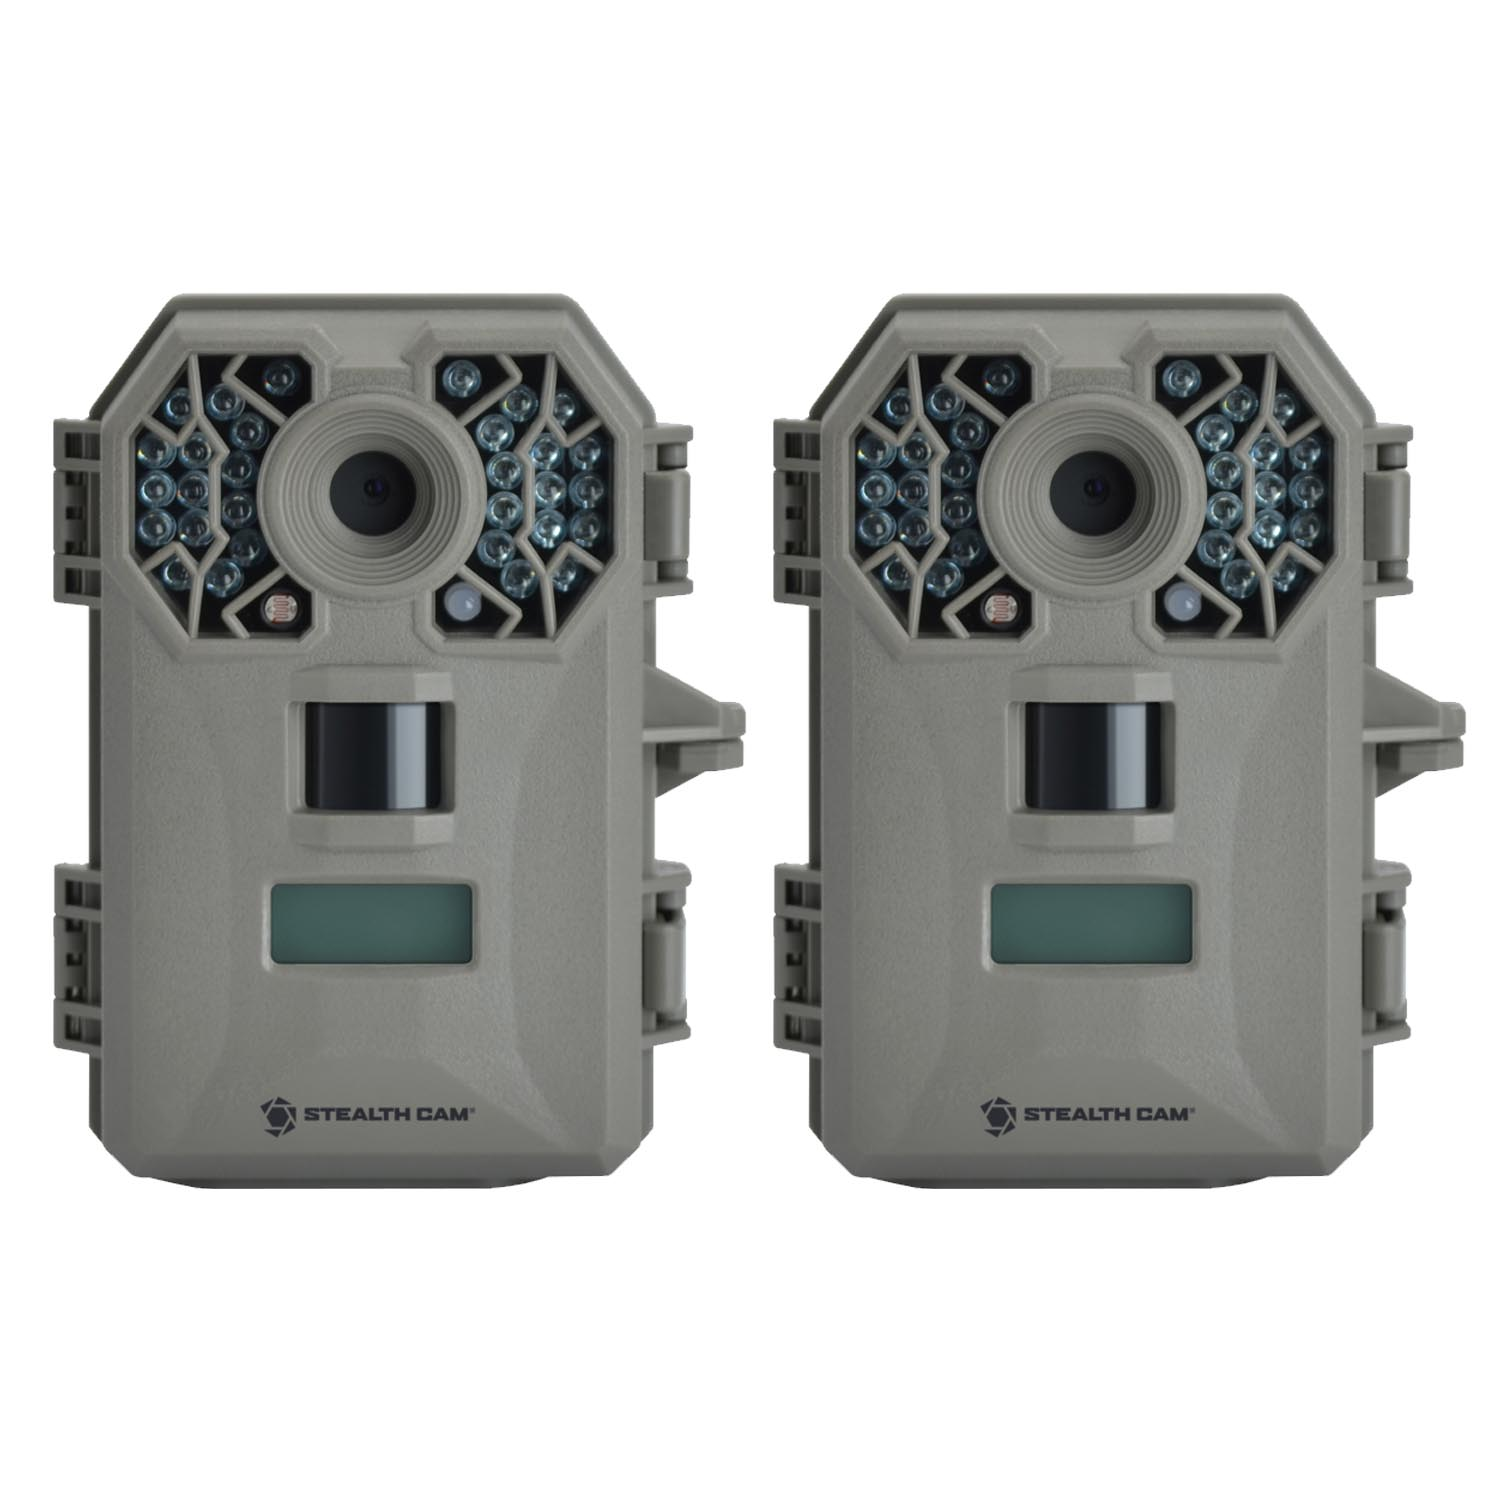 (2) Stealth Cam G30 TRIAD Technology Equipped Digital Trail Game Camera 8MP | STC-G30 by Stealthcam